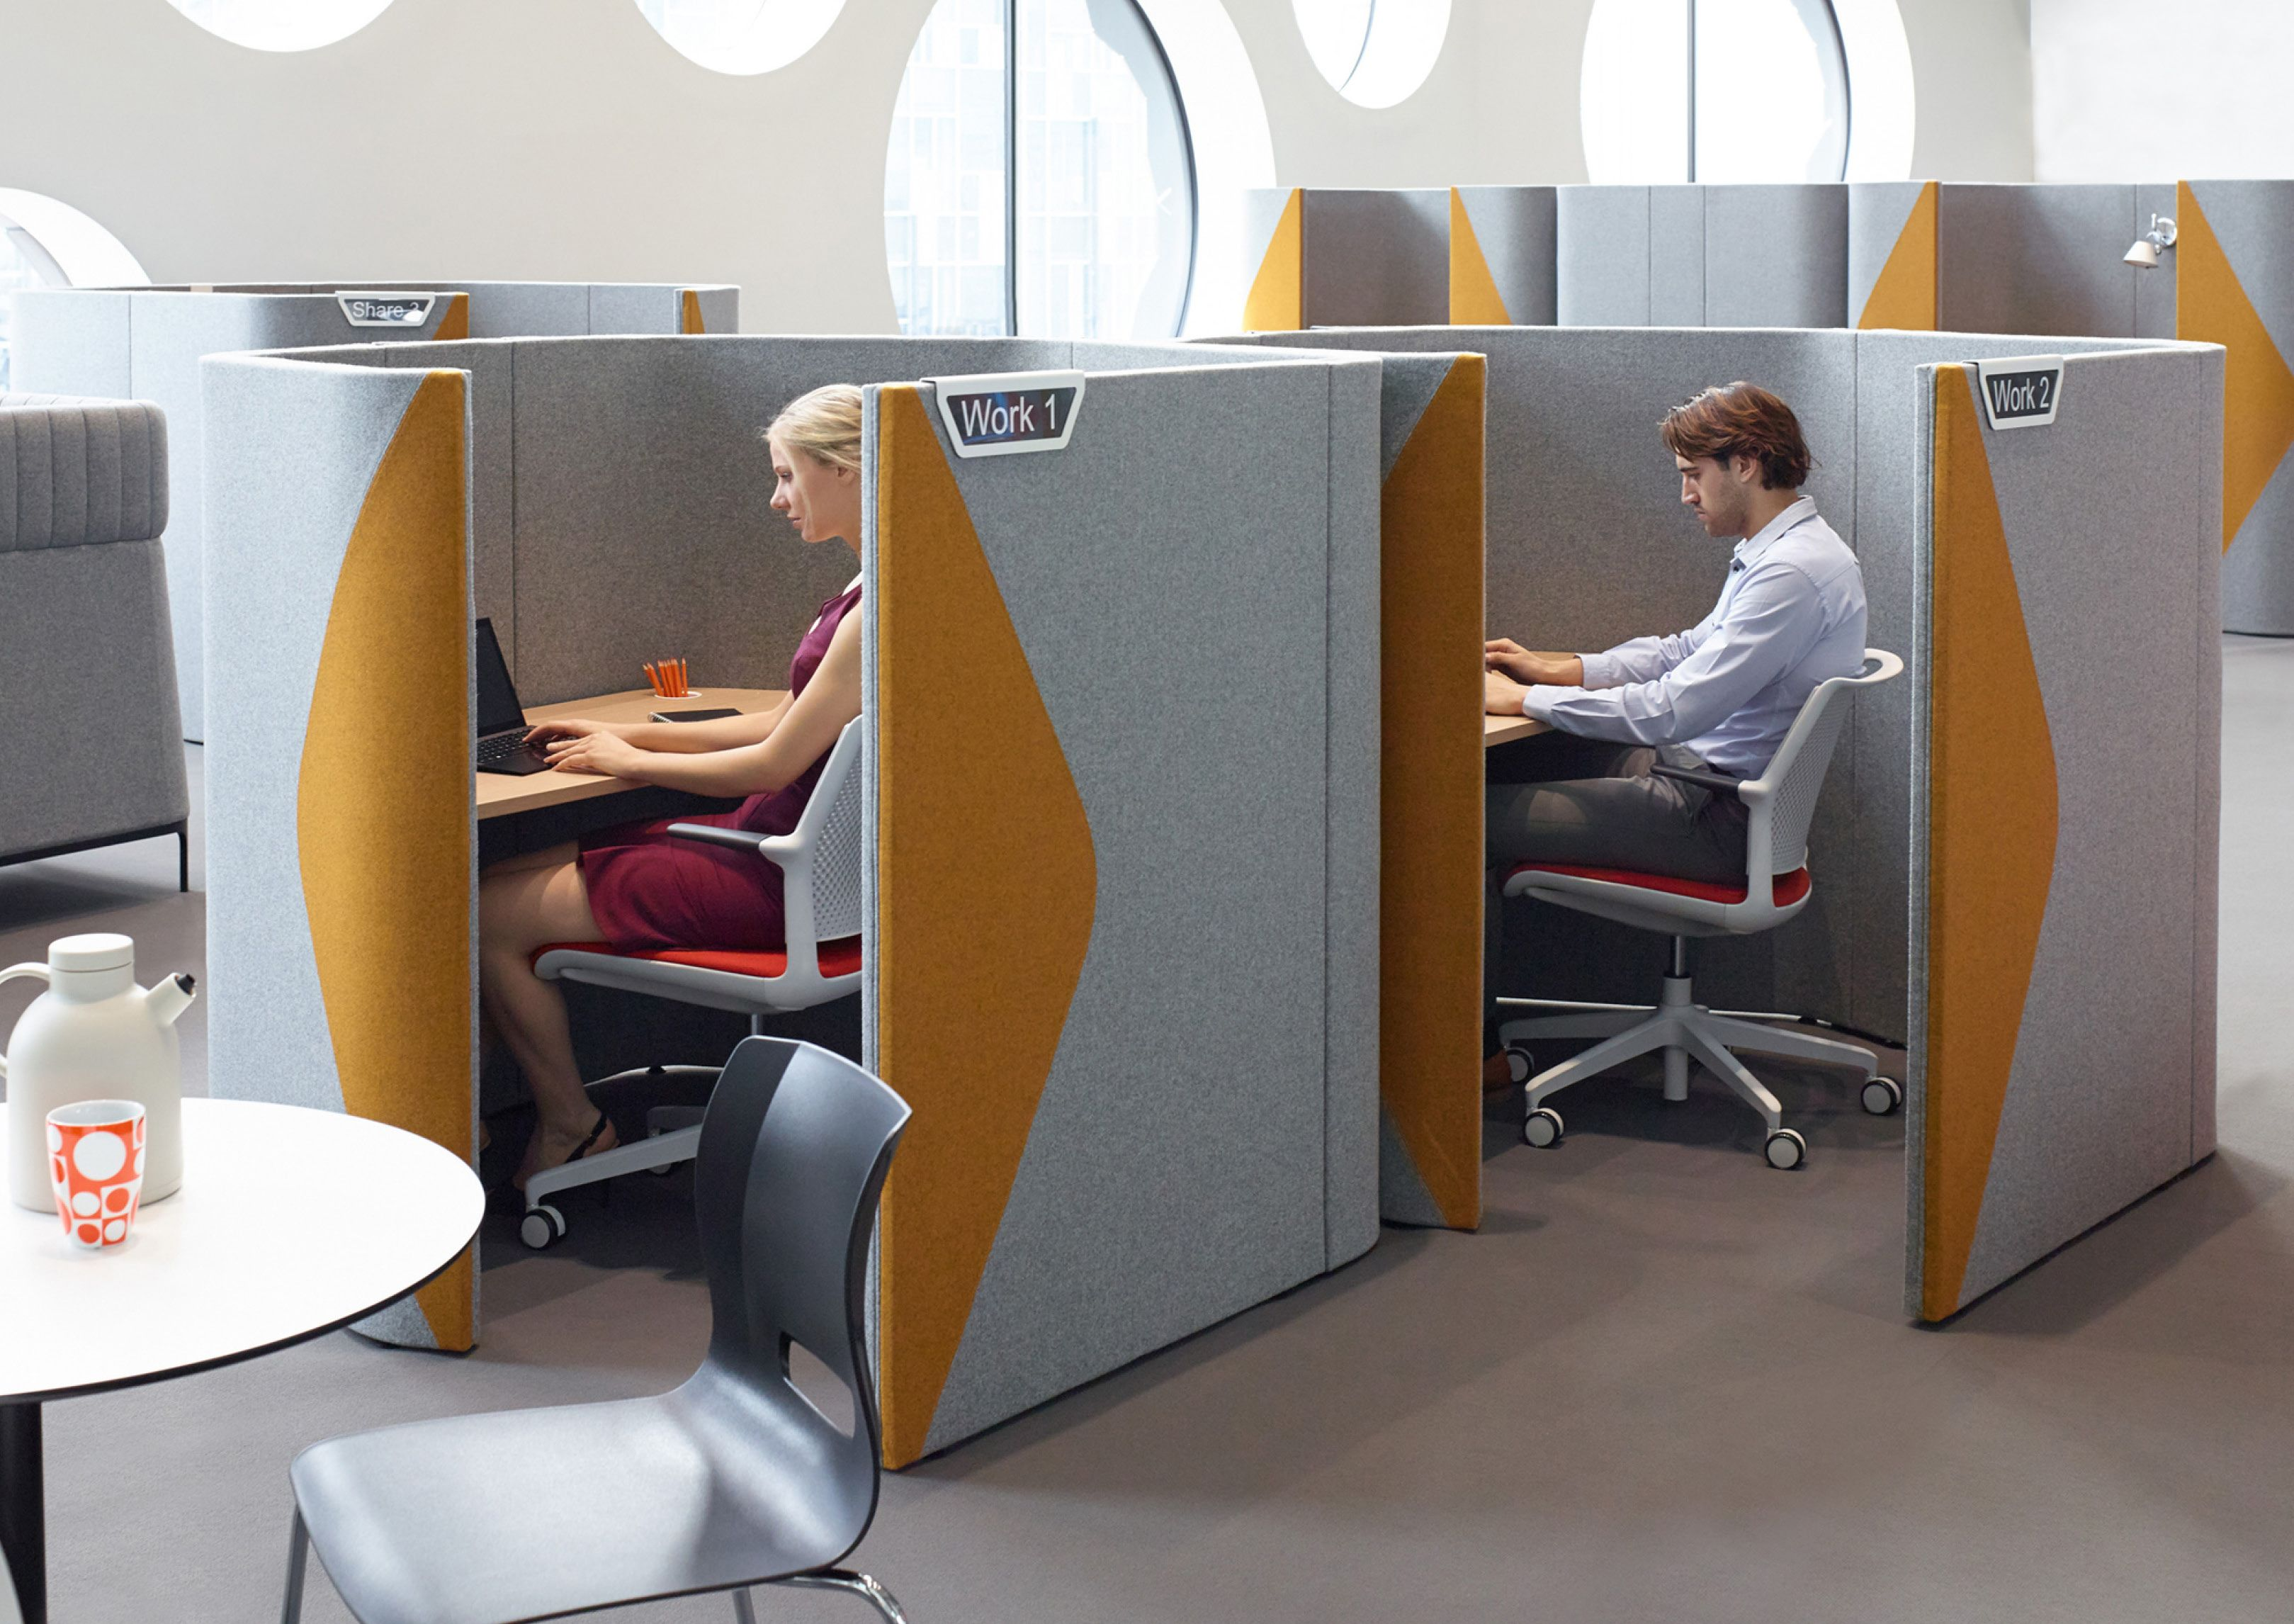 office privacy pods. office booths allow single or mutiple users to work meet with additional privacy. acoustic increase the sound absorbing properties of booth privacy pods